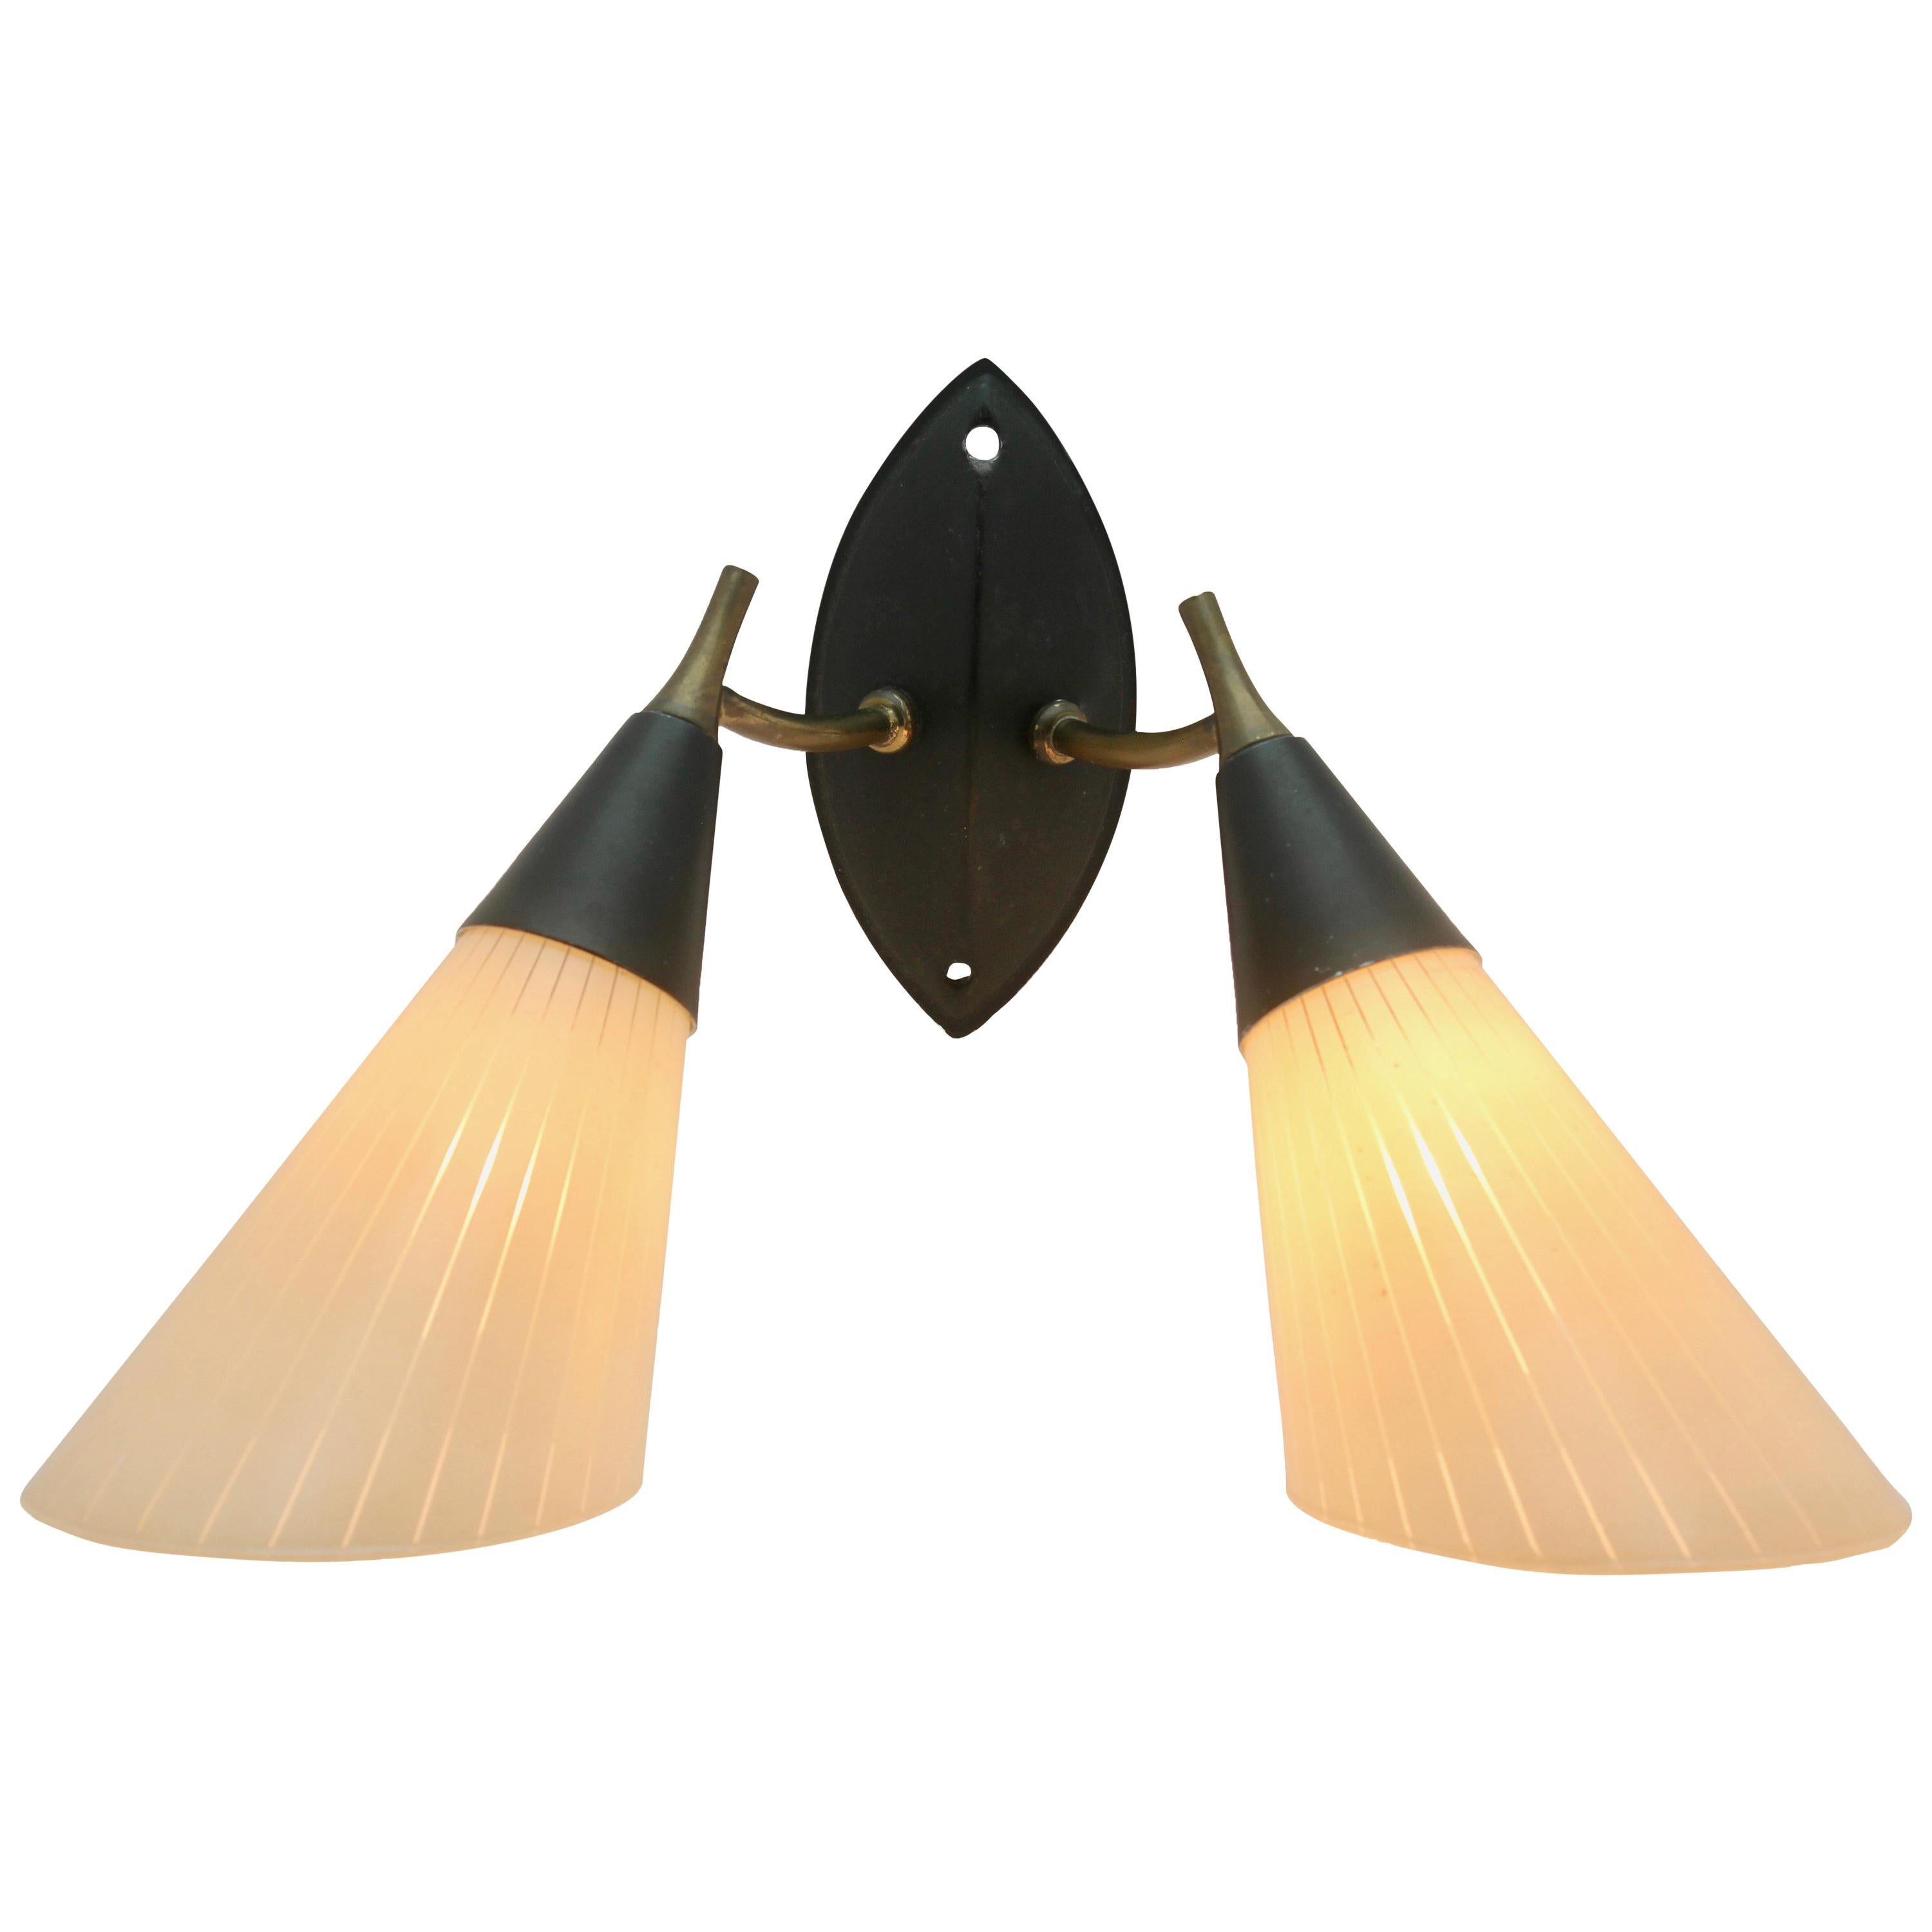 Midcentury Double Wall Sconce With Searchlight Lampshades For Sale